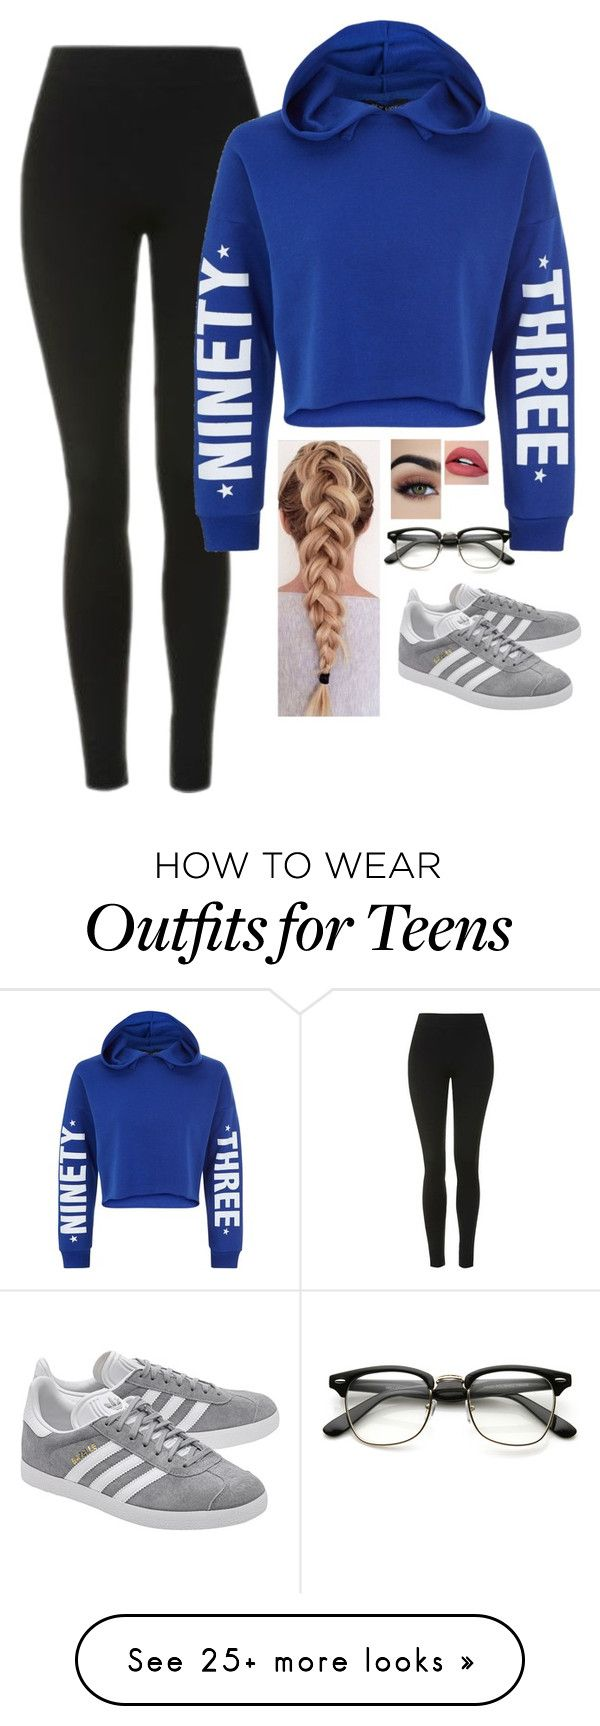 """Untitled #1445"" by malfoys-princess on Polyvore featuring Topshop, New Look and adidas Originals"